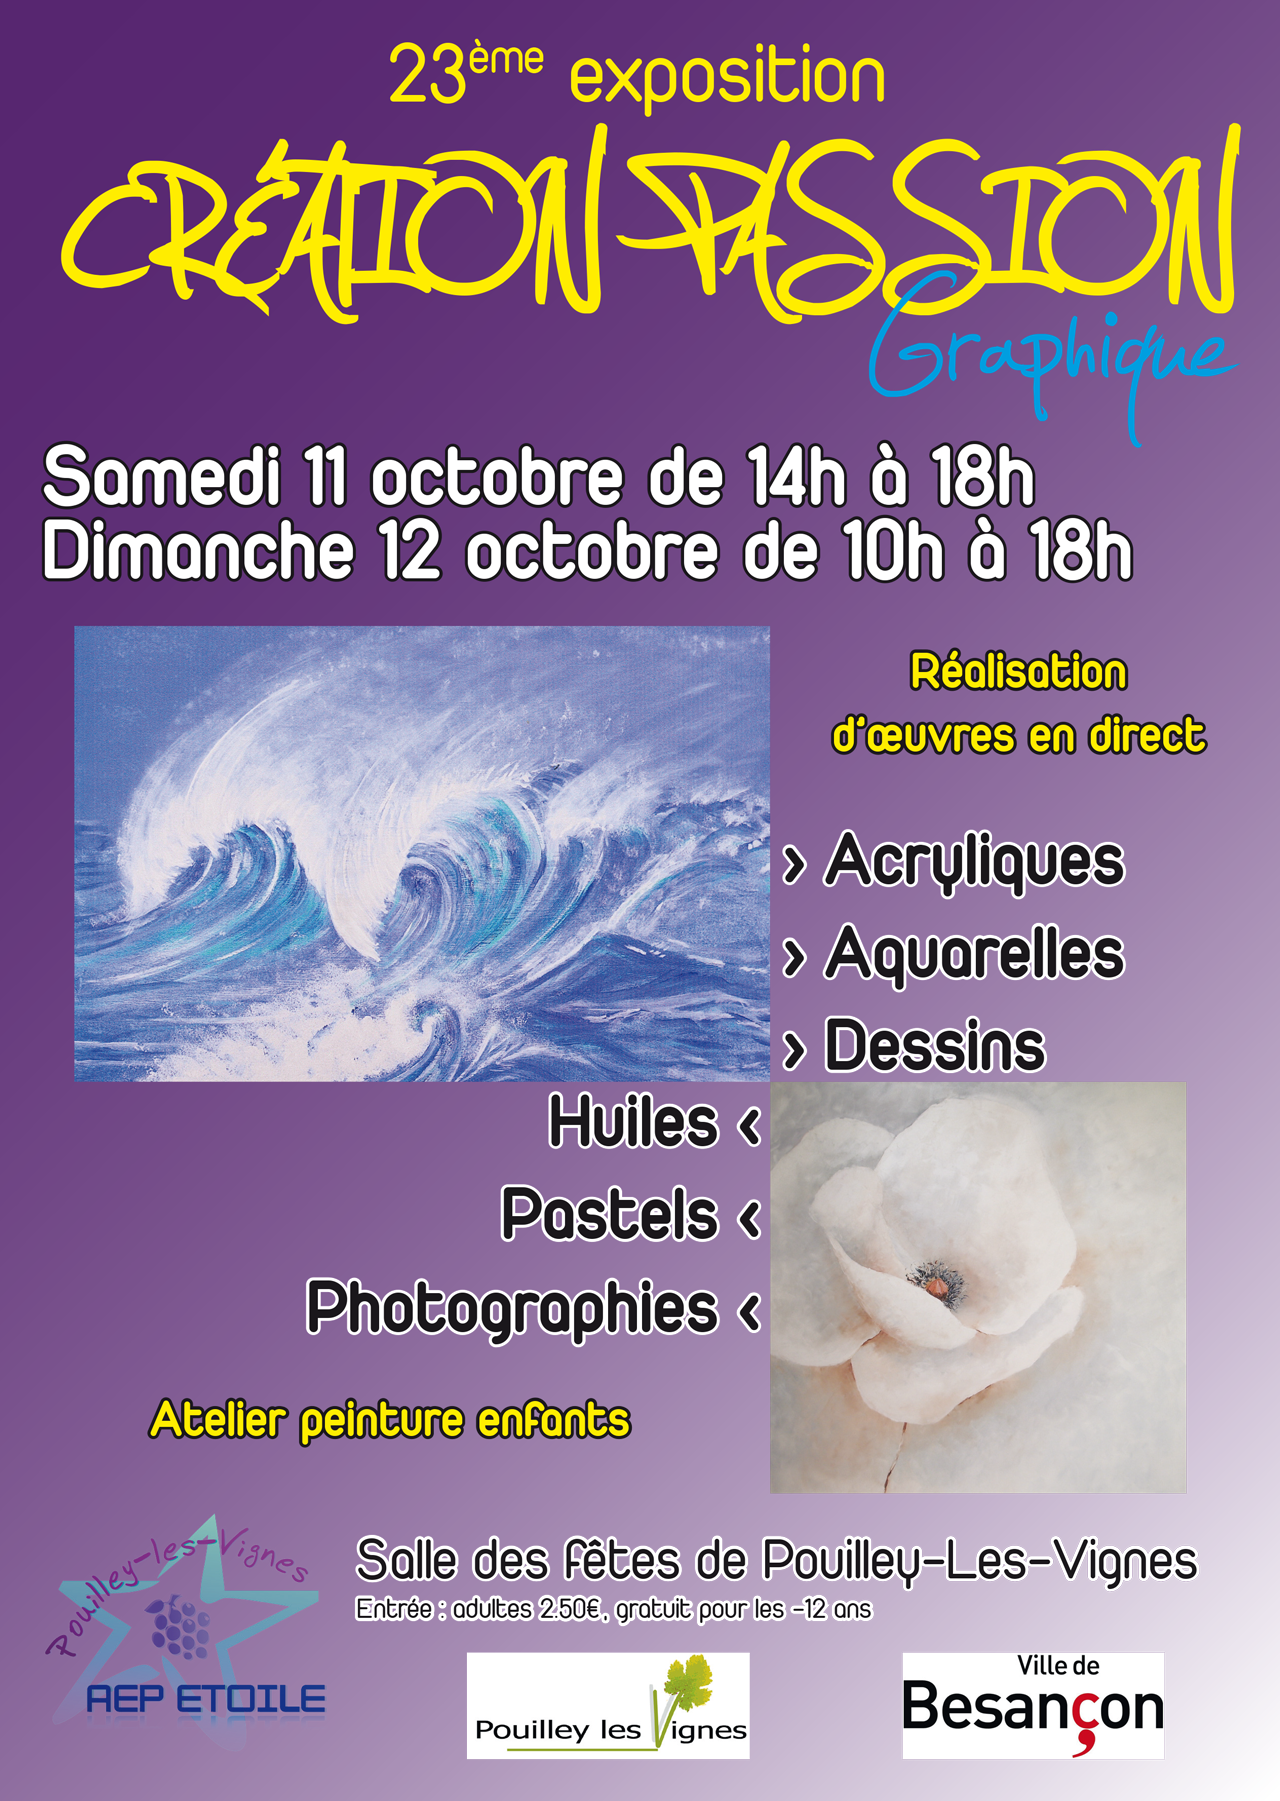 2014-09 - Affiche exposition Creation Passion Graphique